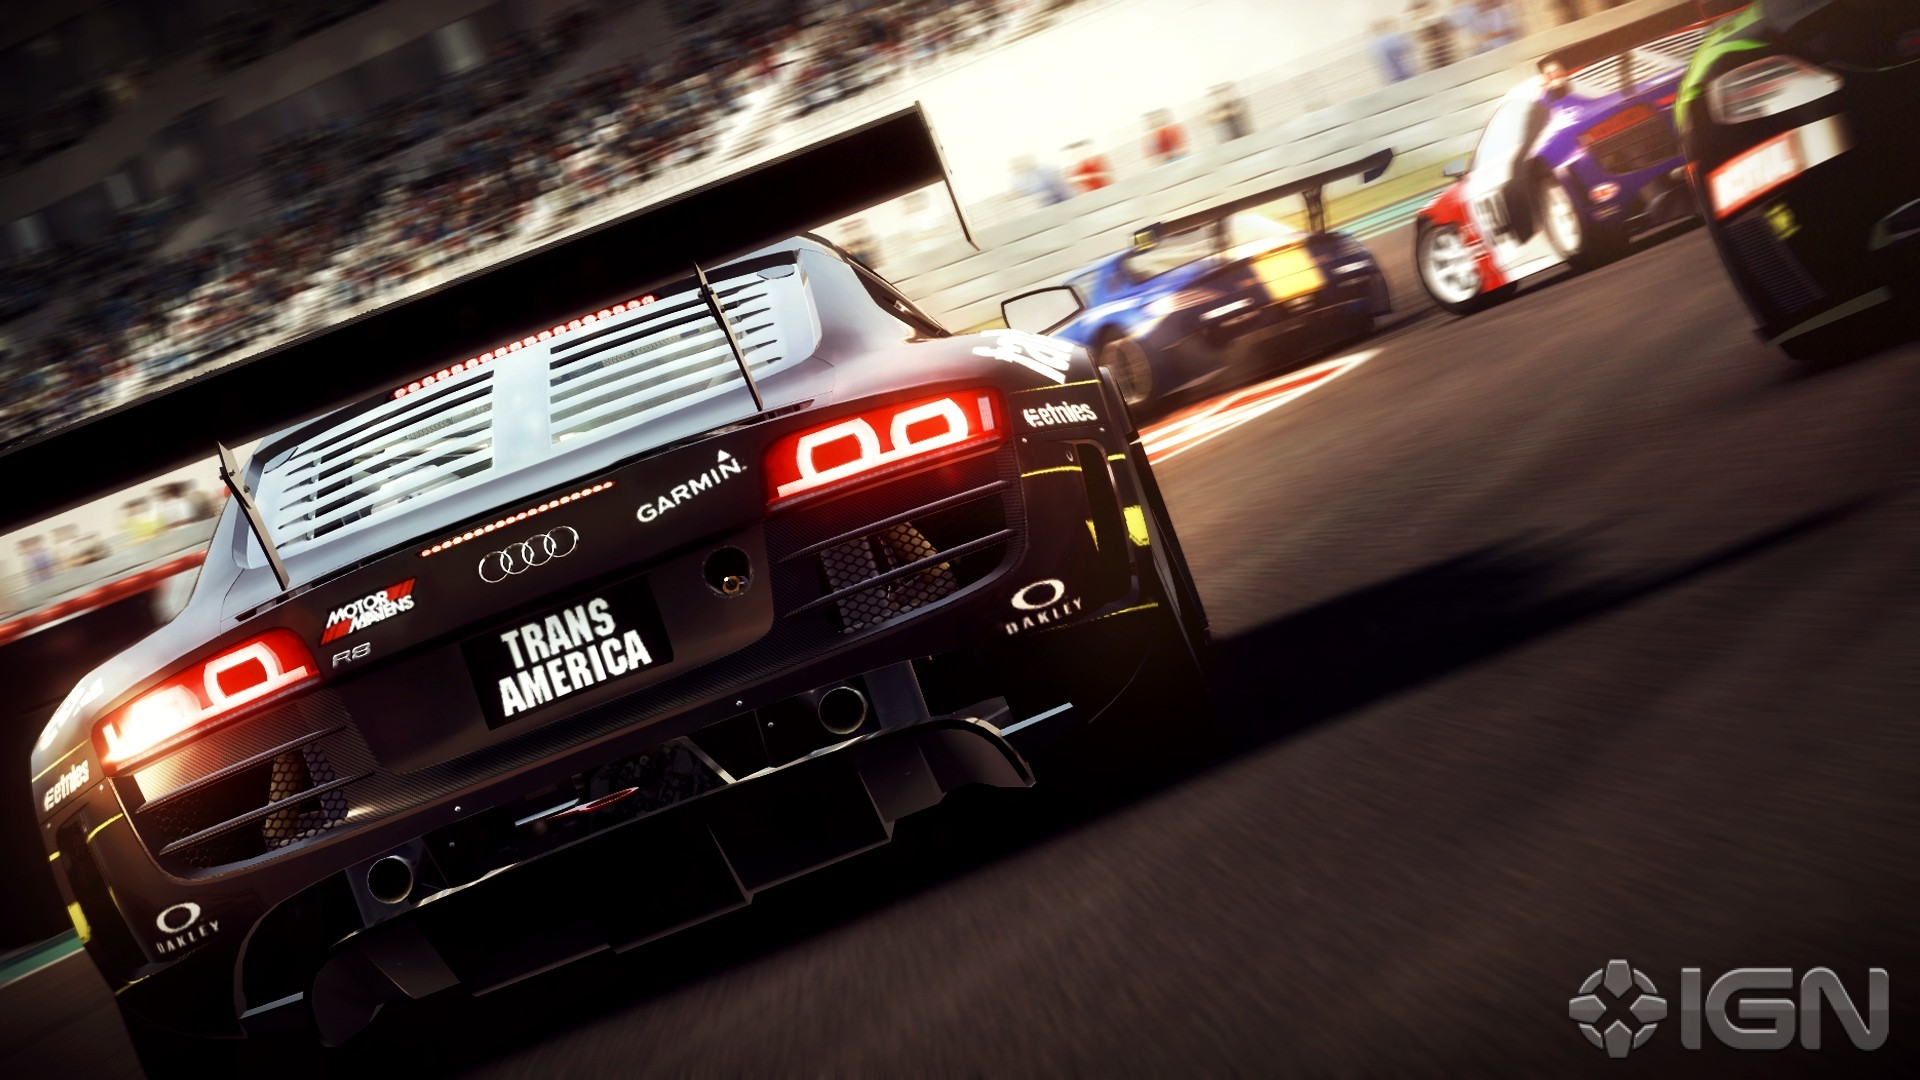 Grid 2 Game Wallpaper High Resolution Pics: Grid 2 Full HD Wallpaper And Background Image